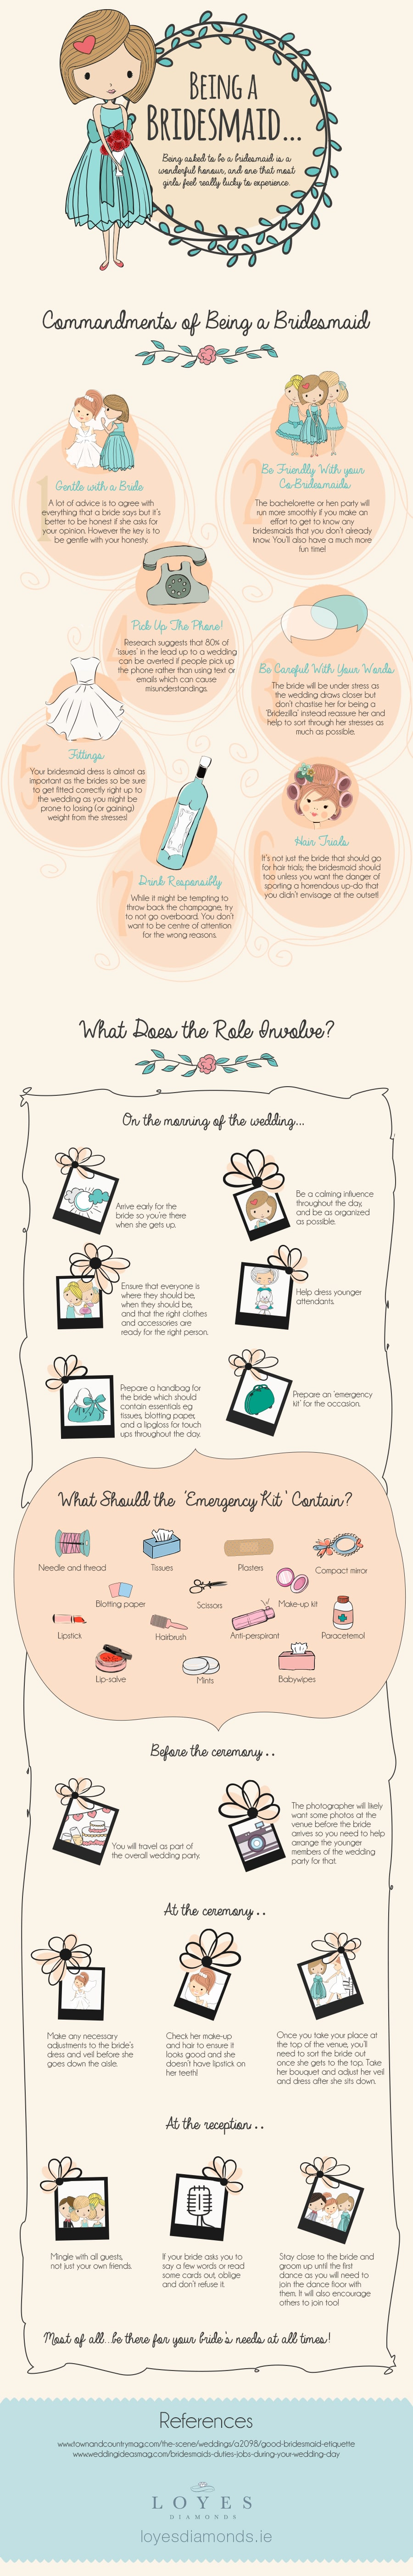 Being-a-Bridesmaid-Infographic